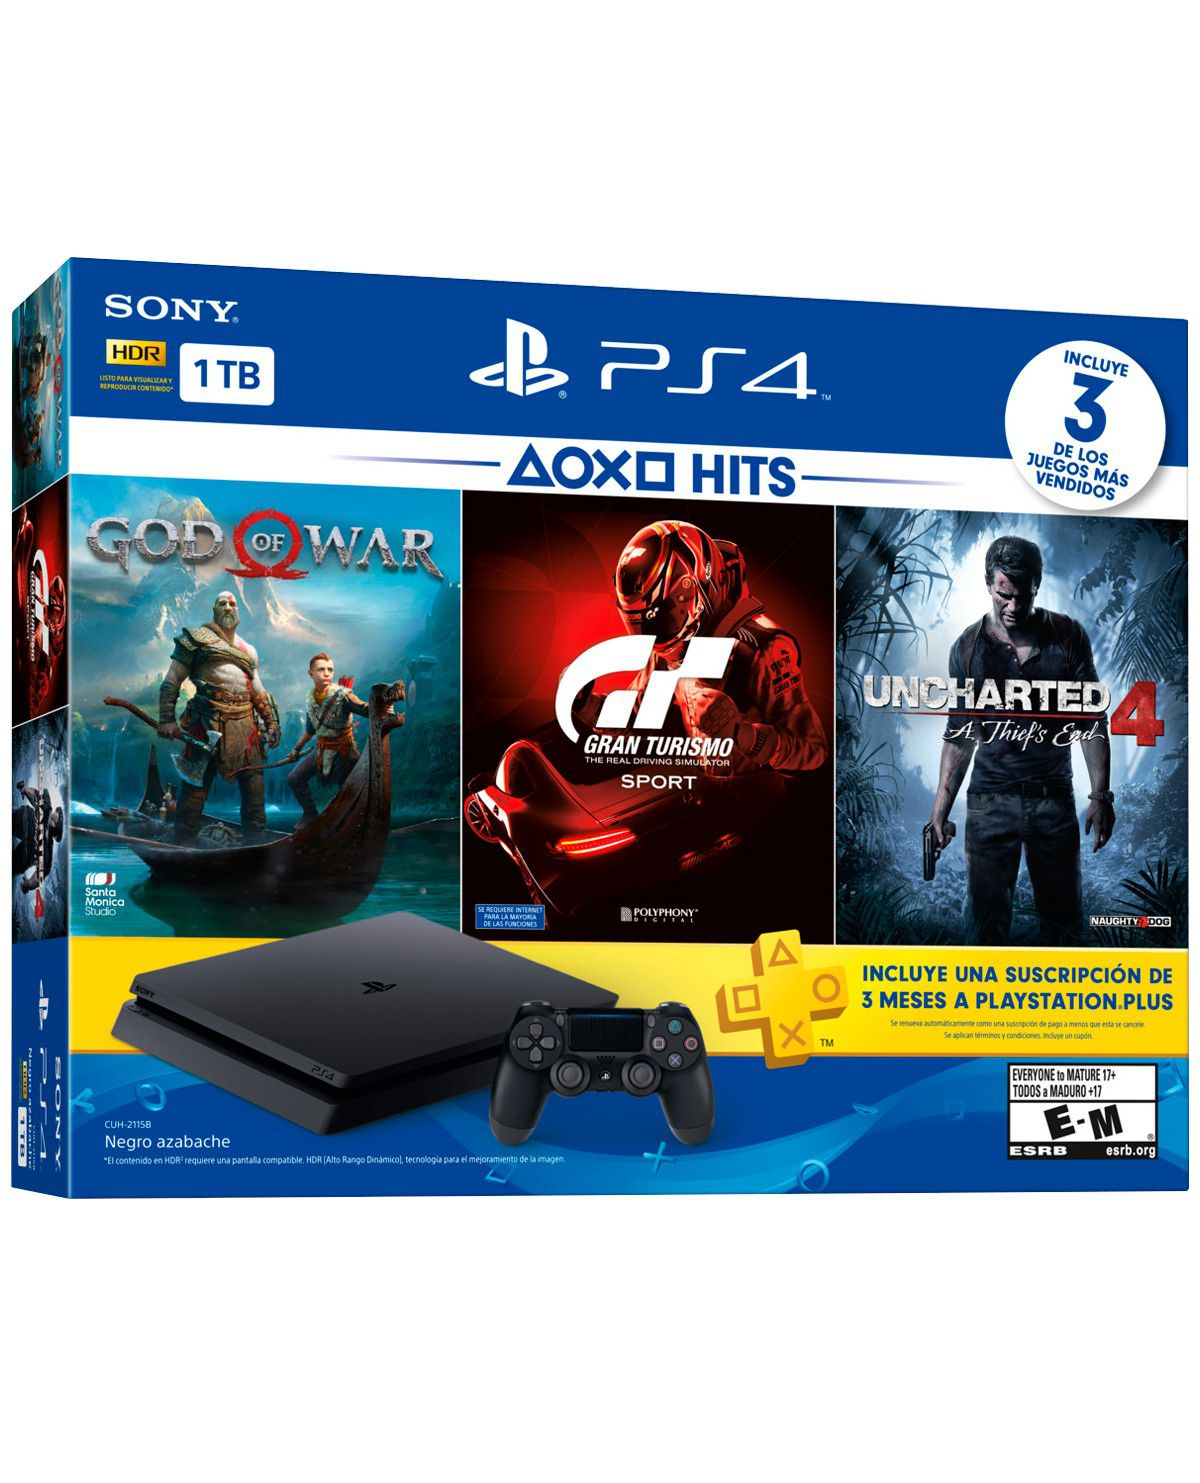 Playstation 4 Slim - 1 Terabyte + 4 Jogos (God of War + Gran Turismo + Uncharted 4 + Fifa 18)